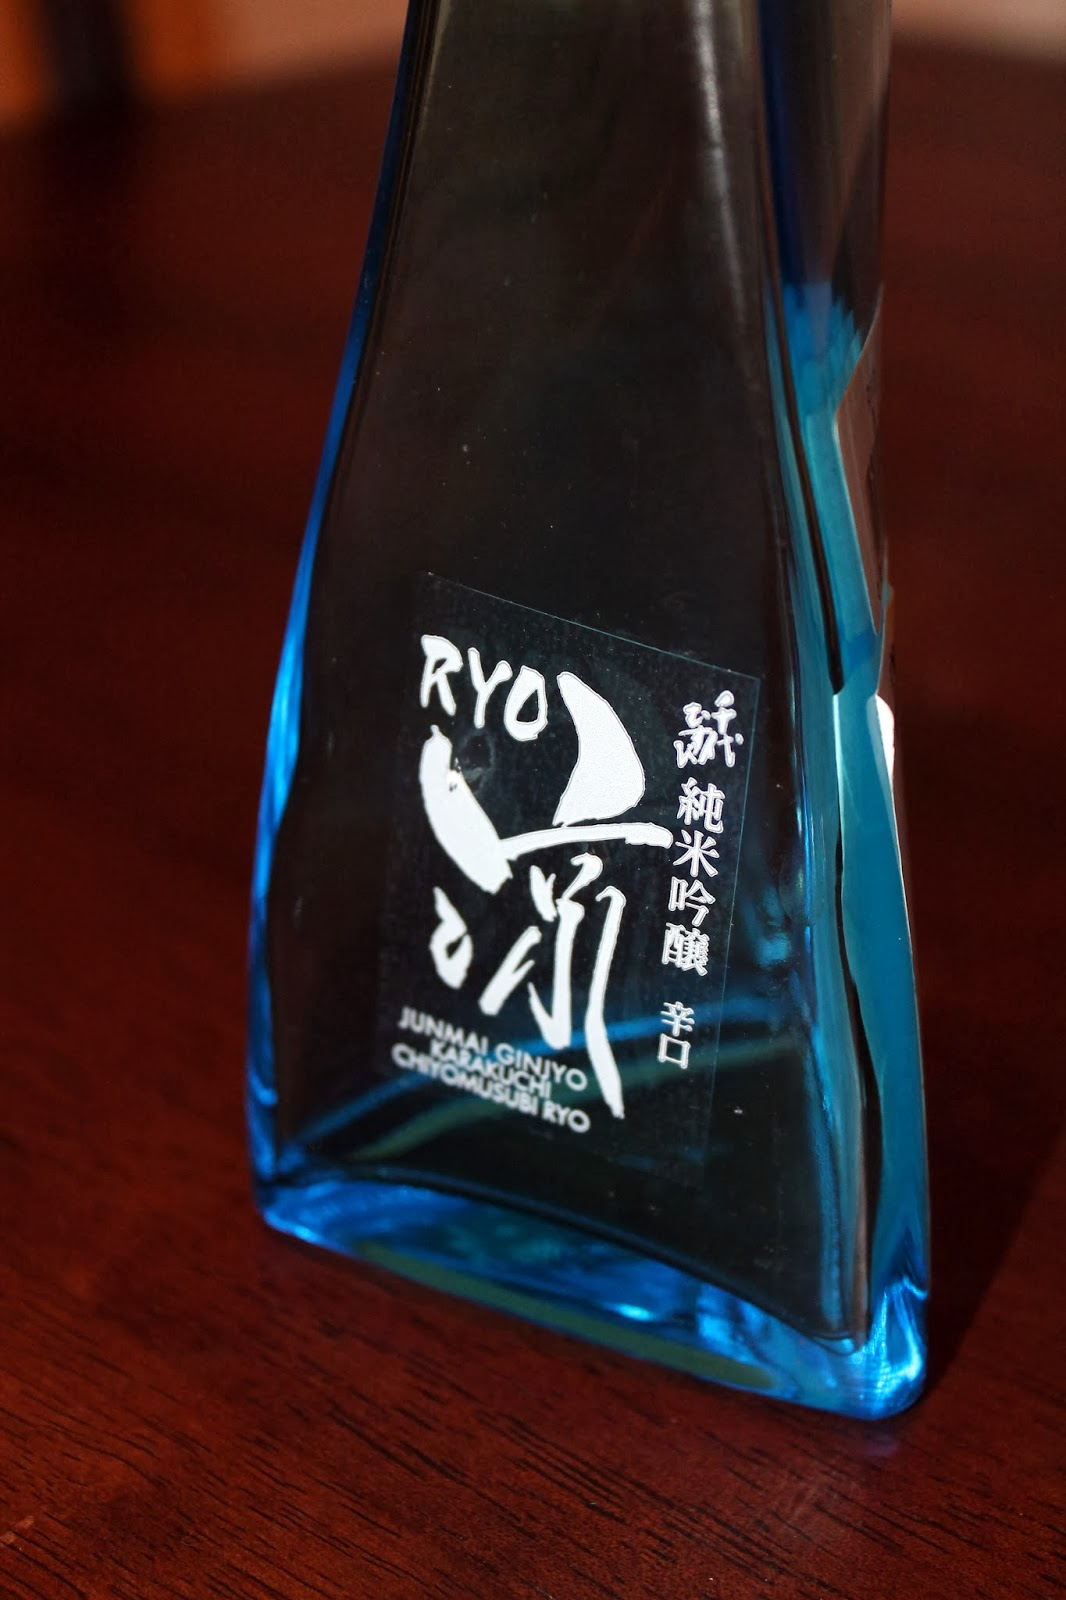 The sake we had on our sushi class date | Lindsay Eryn